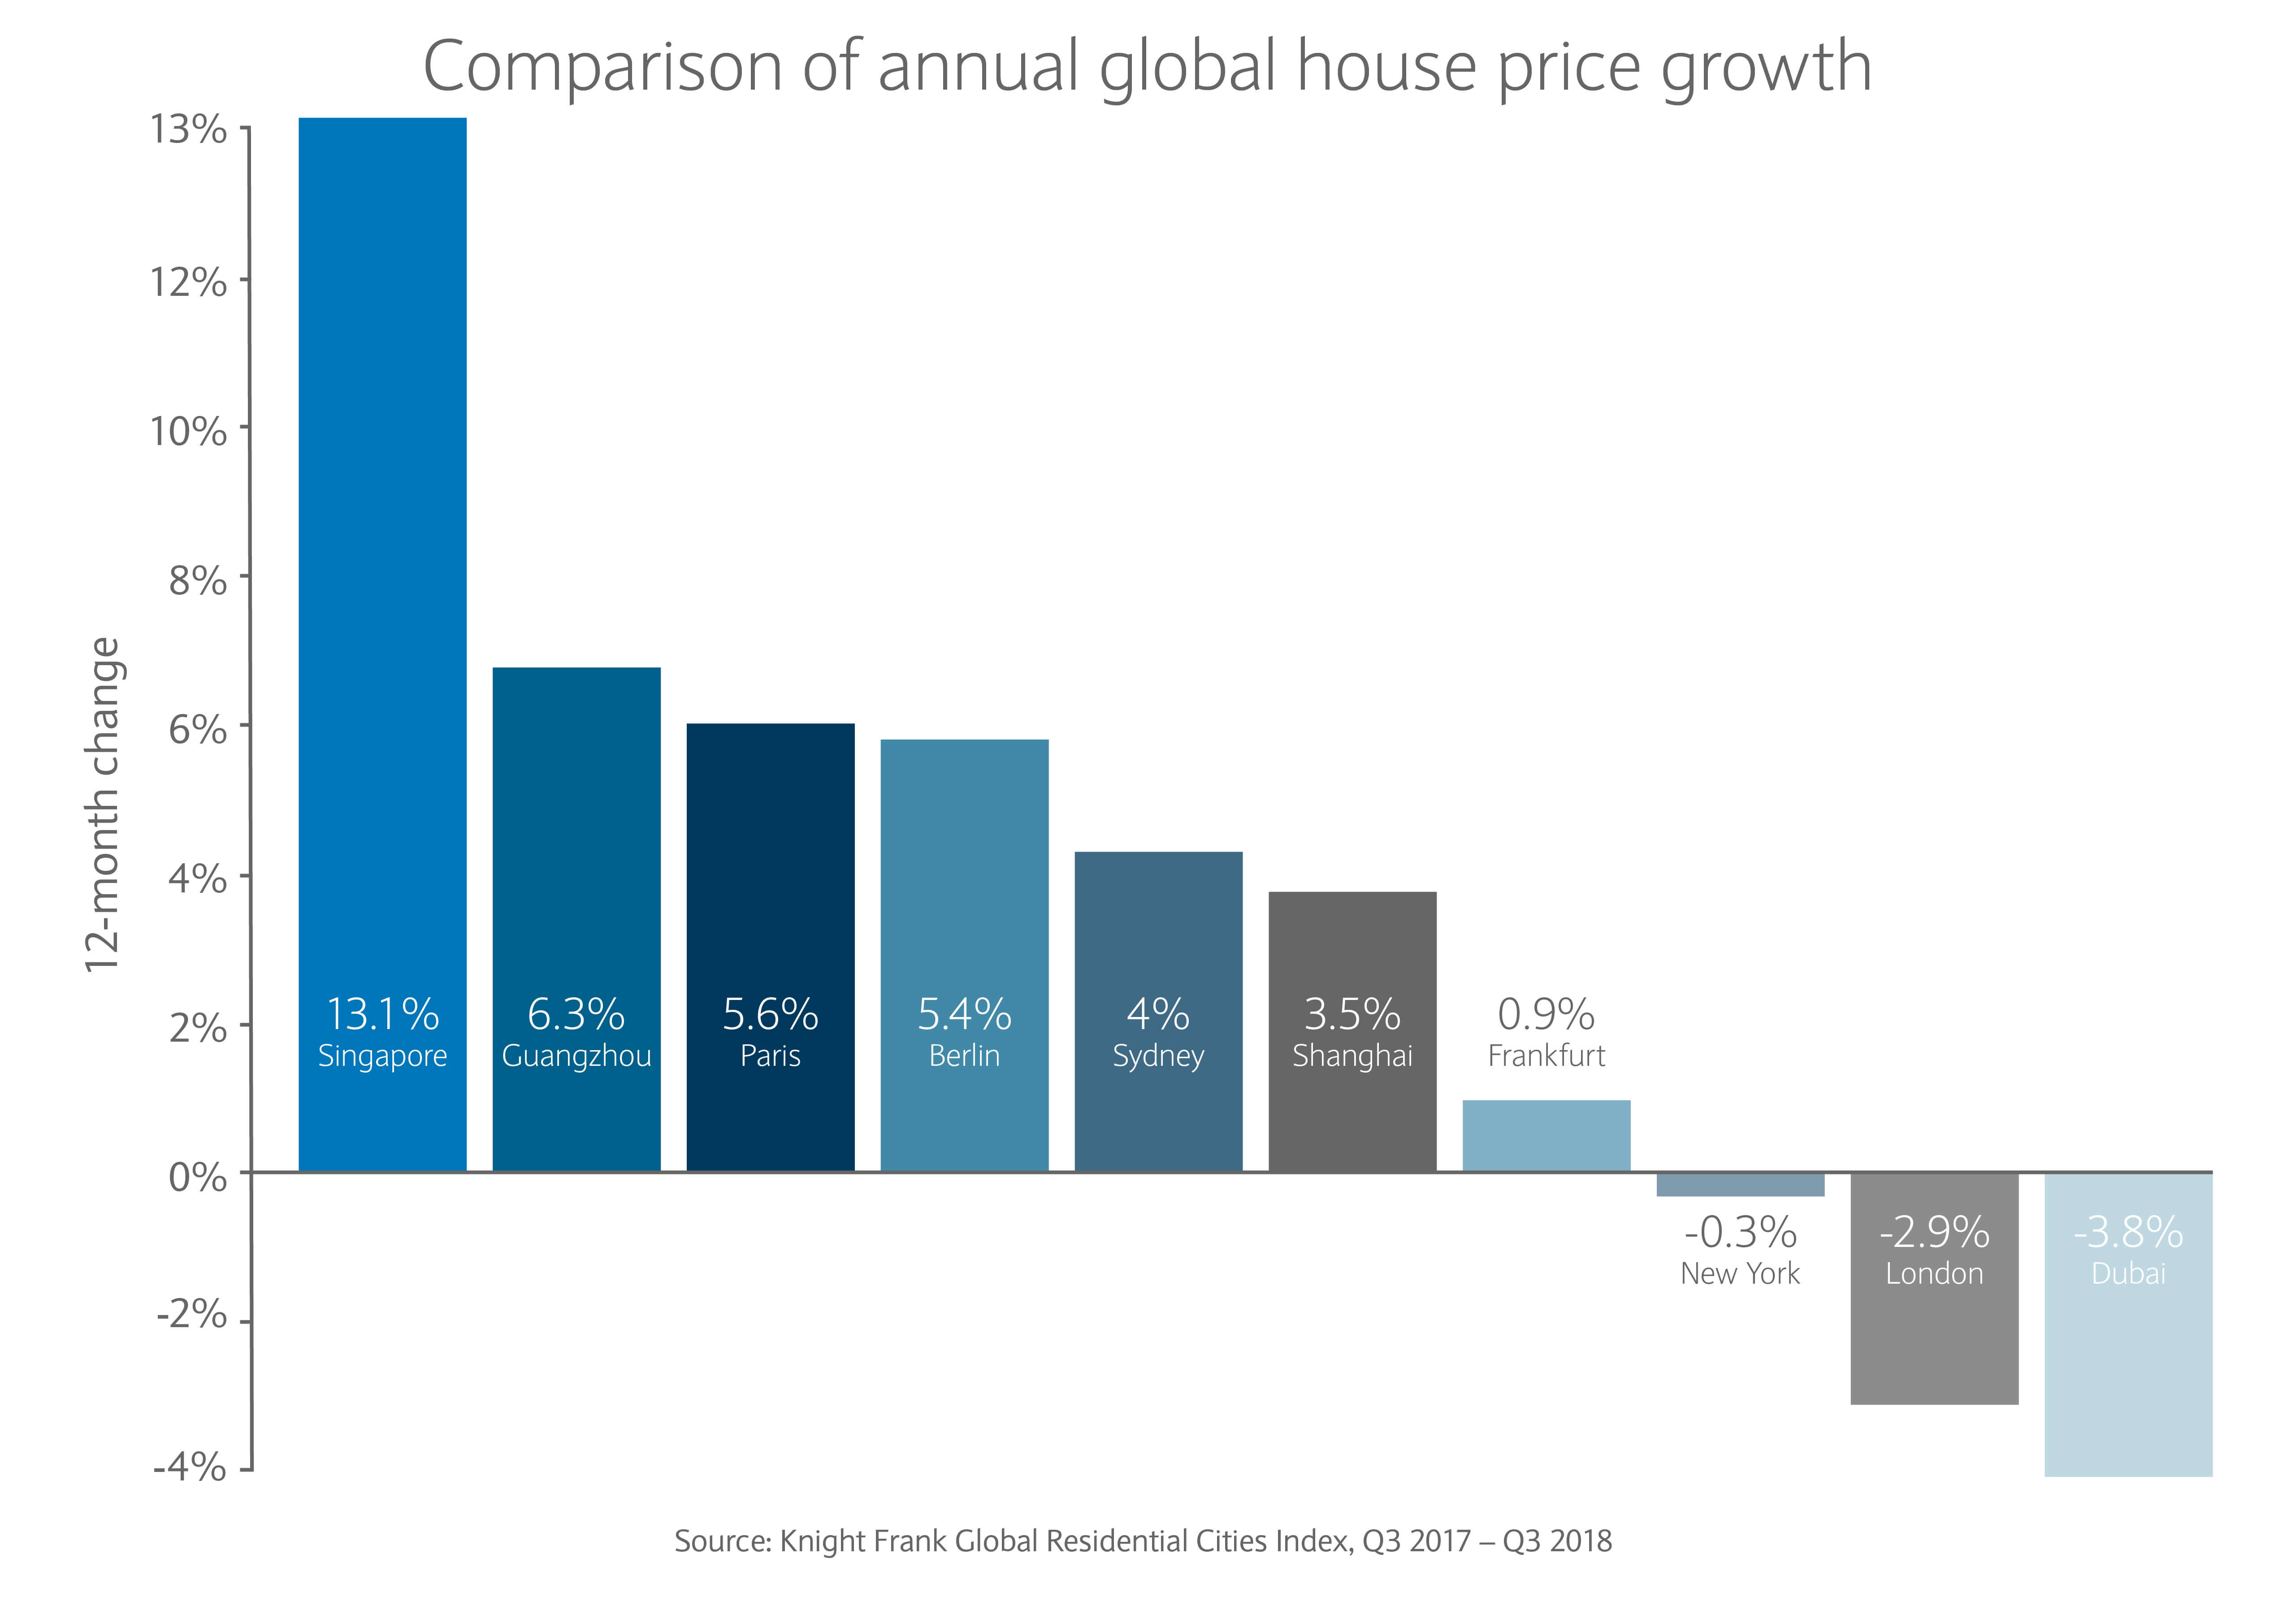 Annual global house price growth